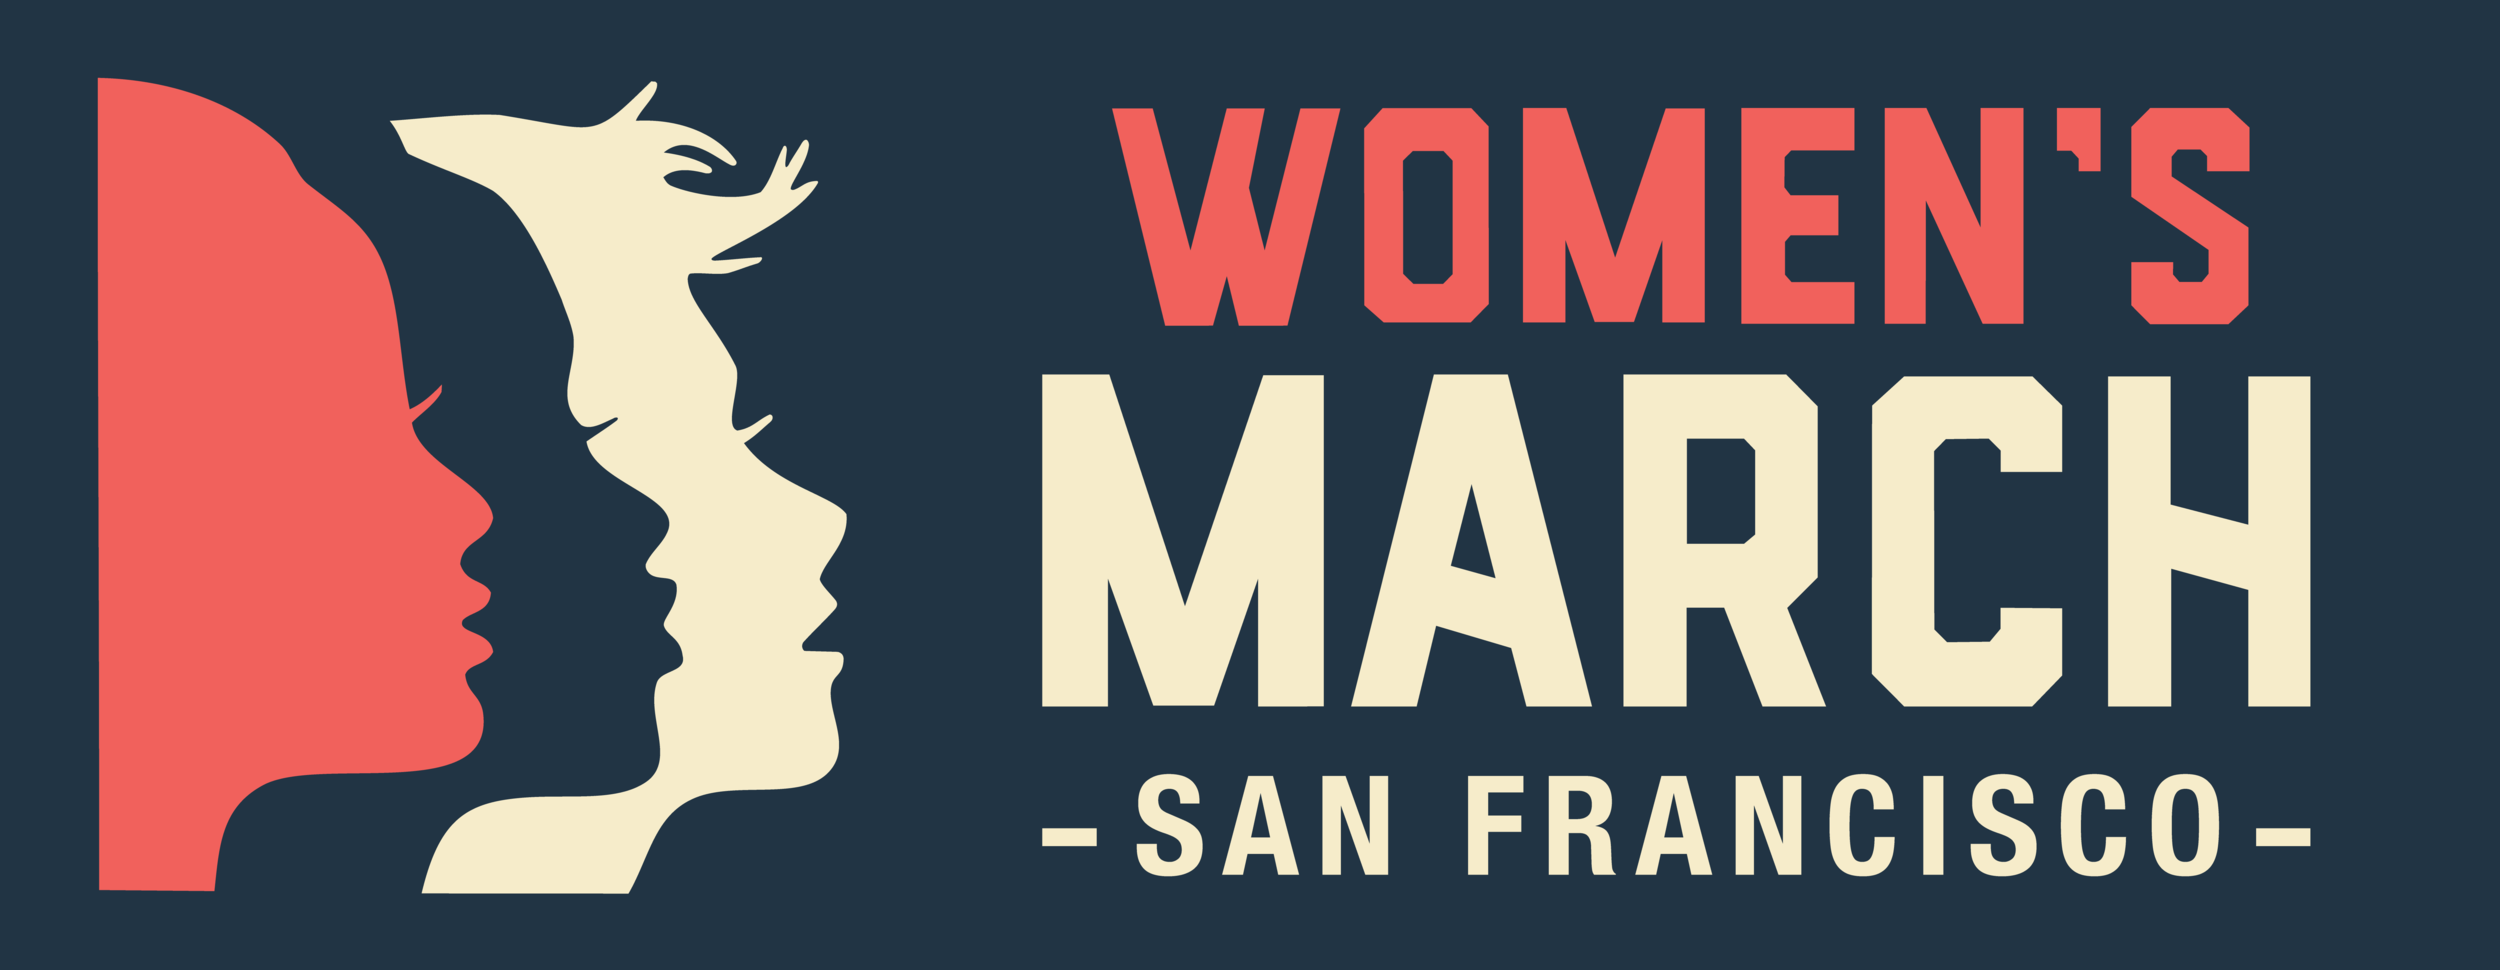 Women's March San Francisco Core Logo - Horizontal